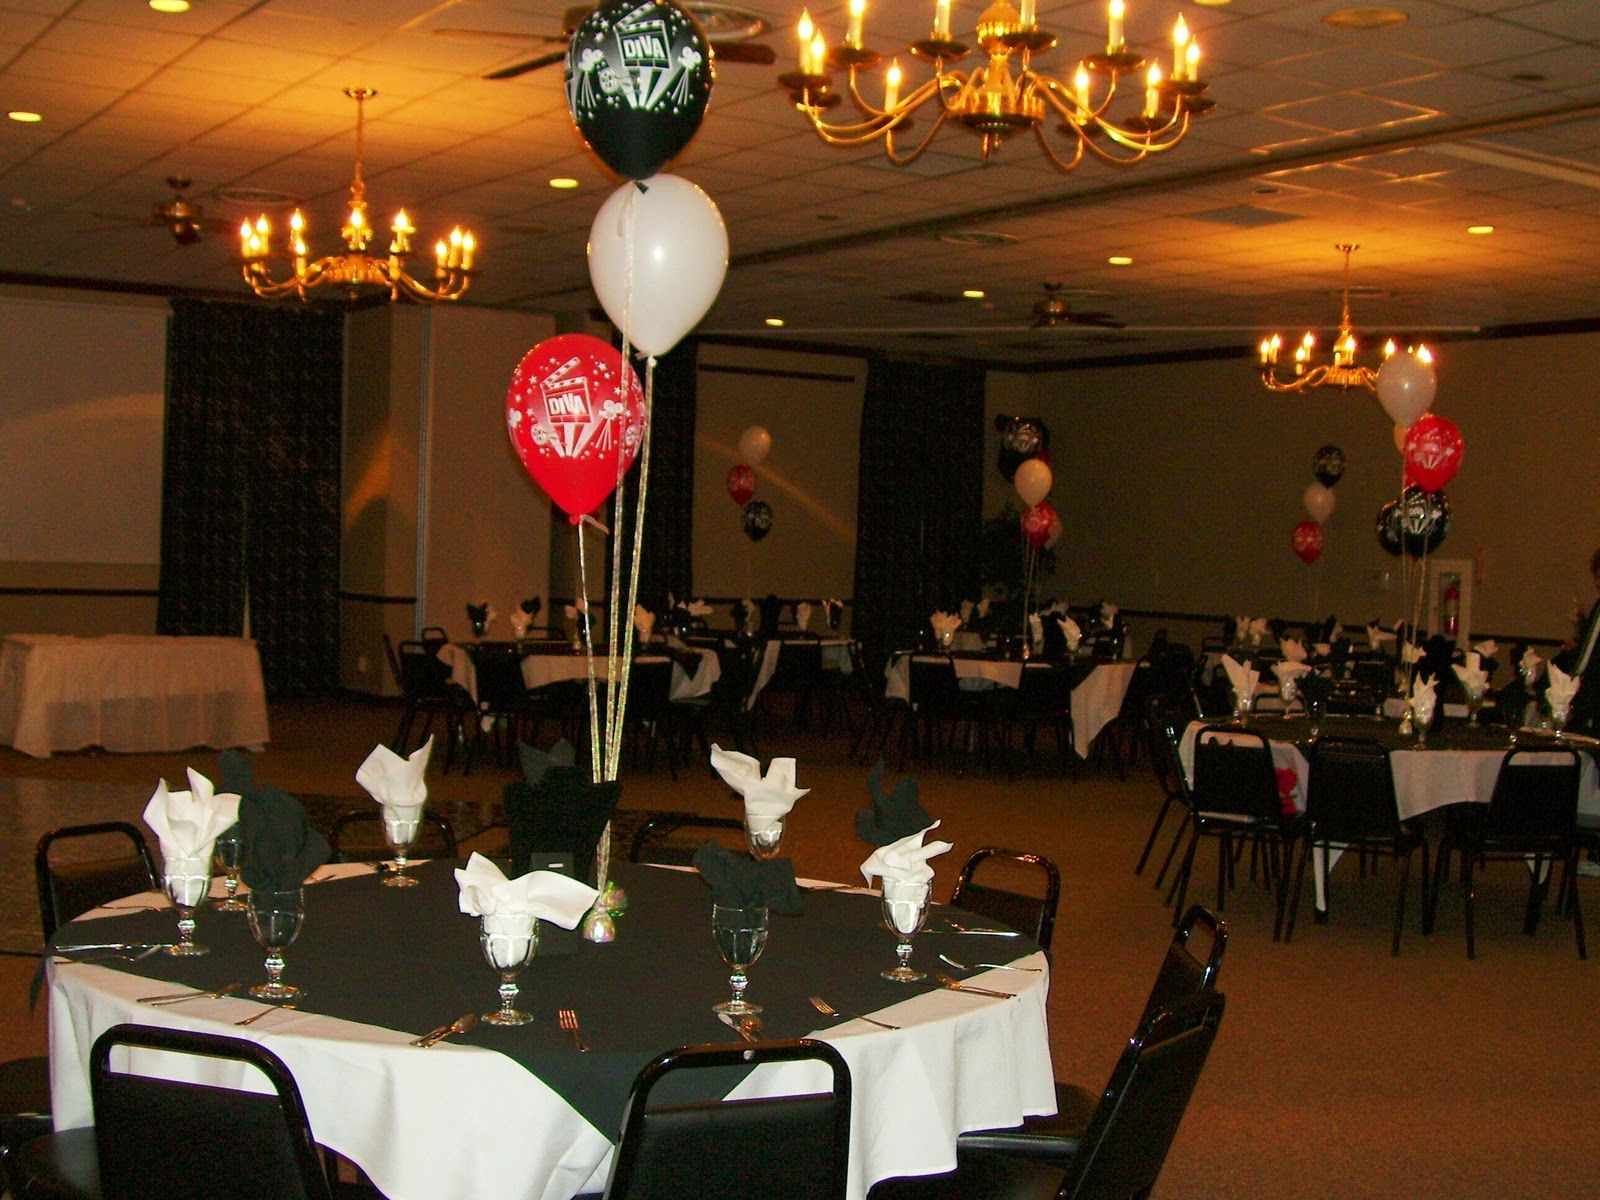 Birthday table decorations for men - 40th Birthday Party Balloon Decorations